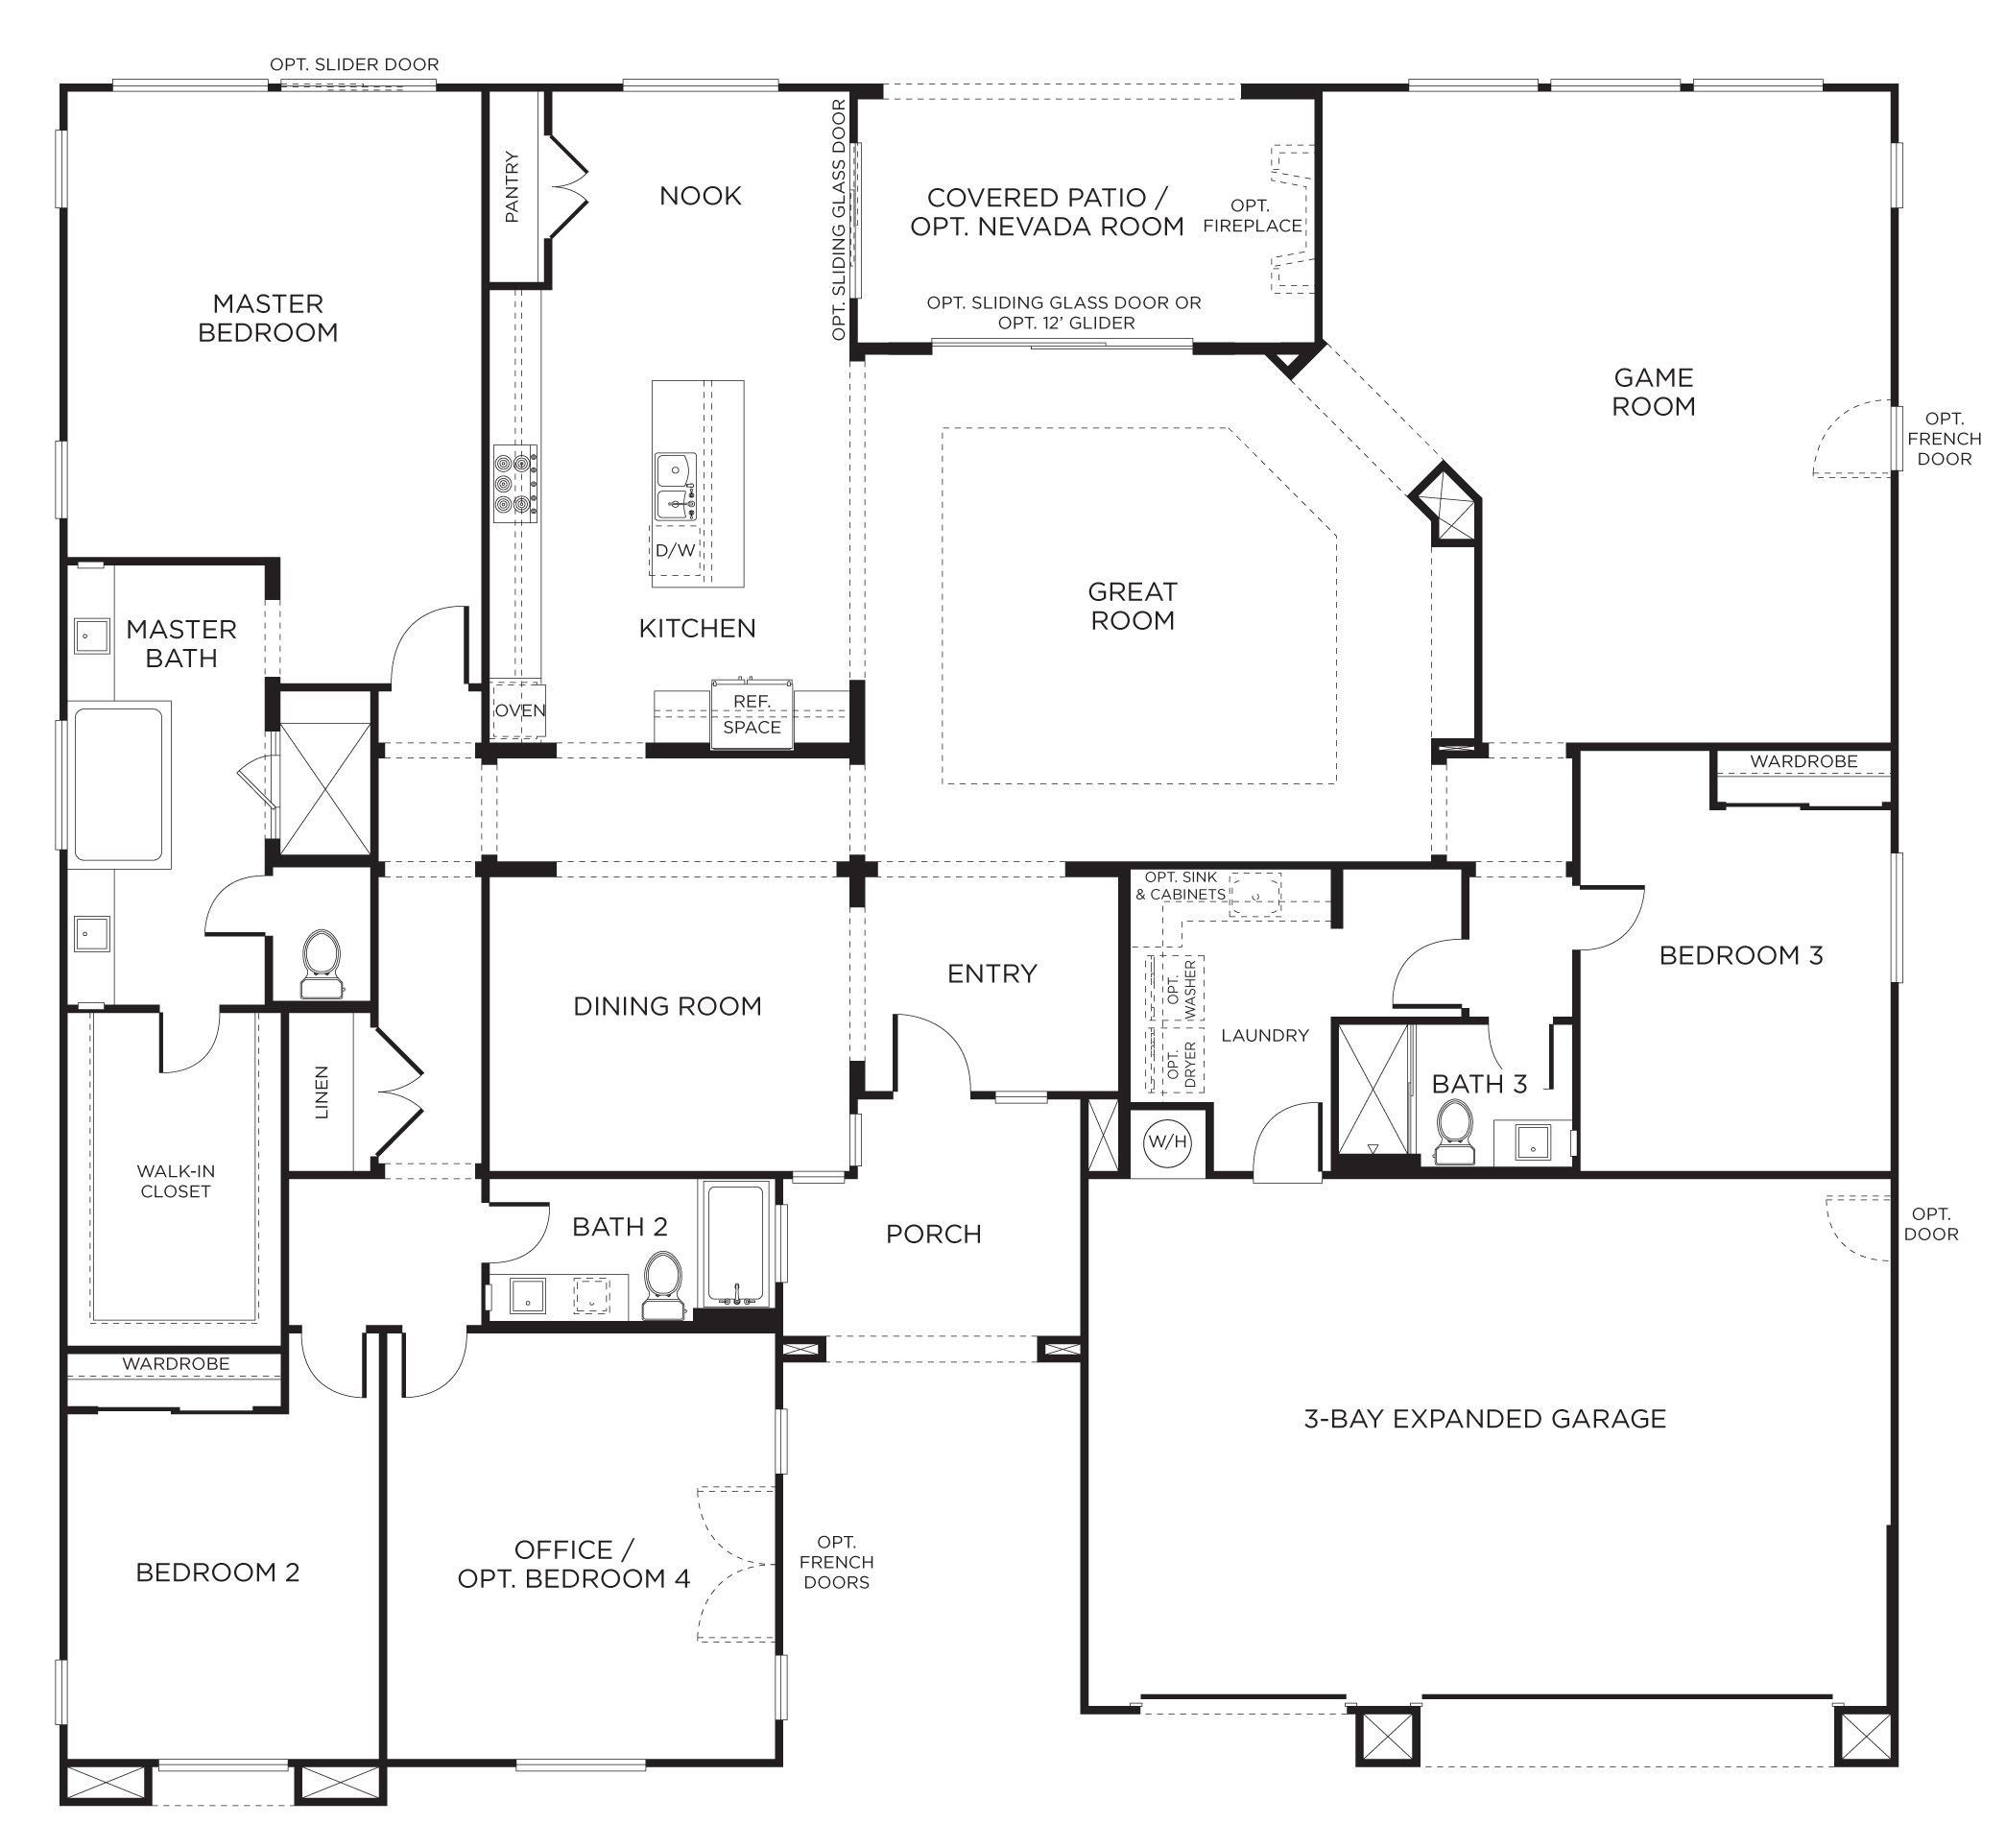 New Home Floorplans Pardee Homes Single Storey House Plans Four Bedroom House Plans One Floor House Plans